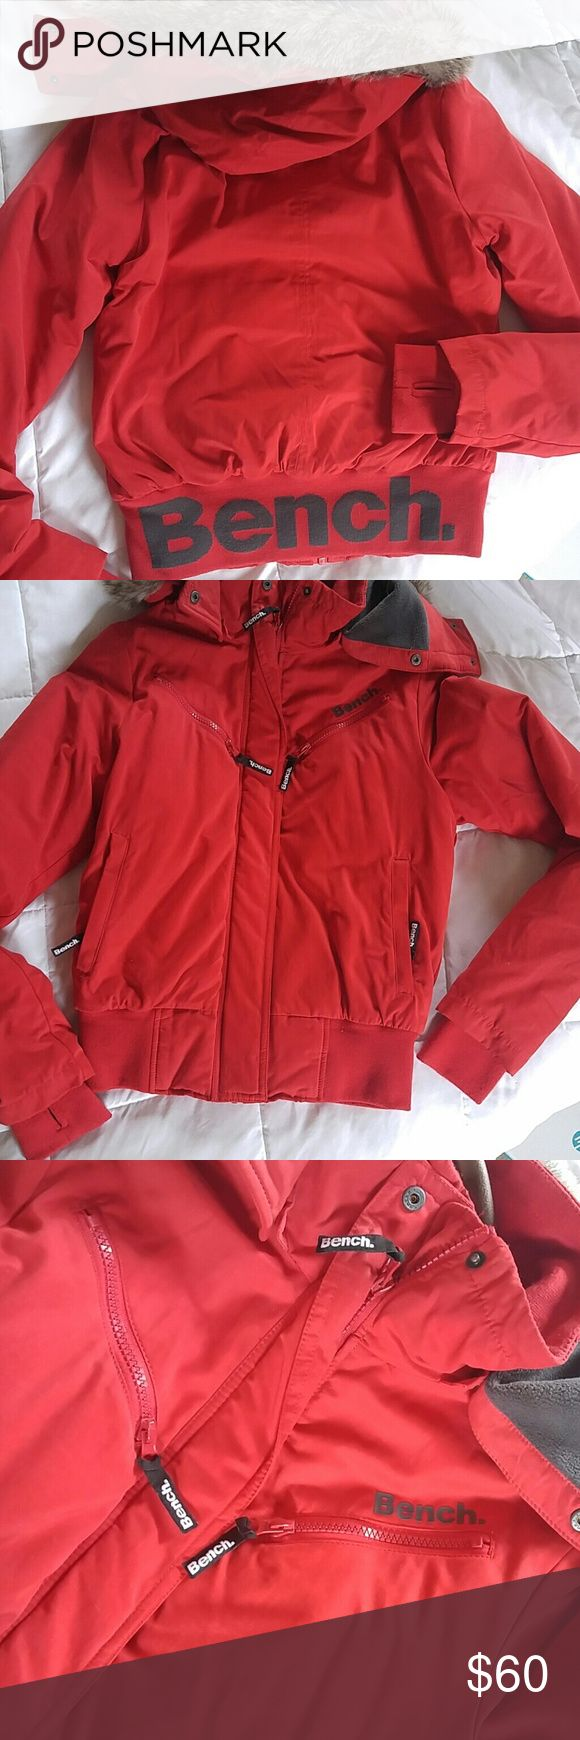 Spotted while shopping on Poshmark: Red Bench Winter Coat! #poshmark #fashion #shopping #style #Bench #Jackets & Blazers